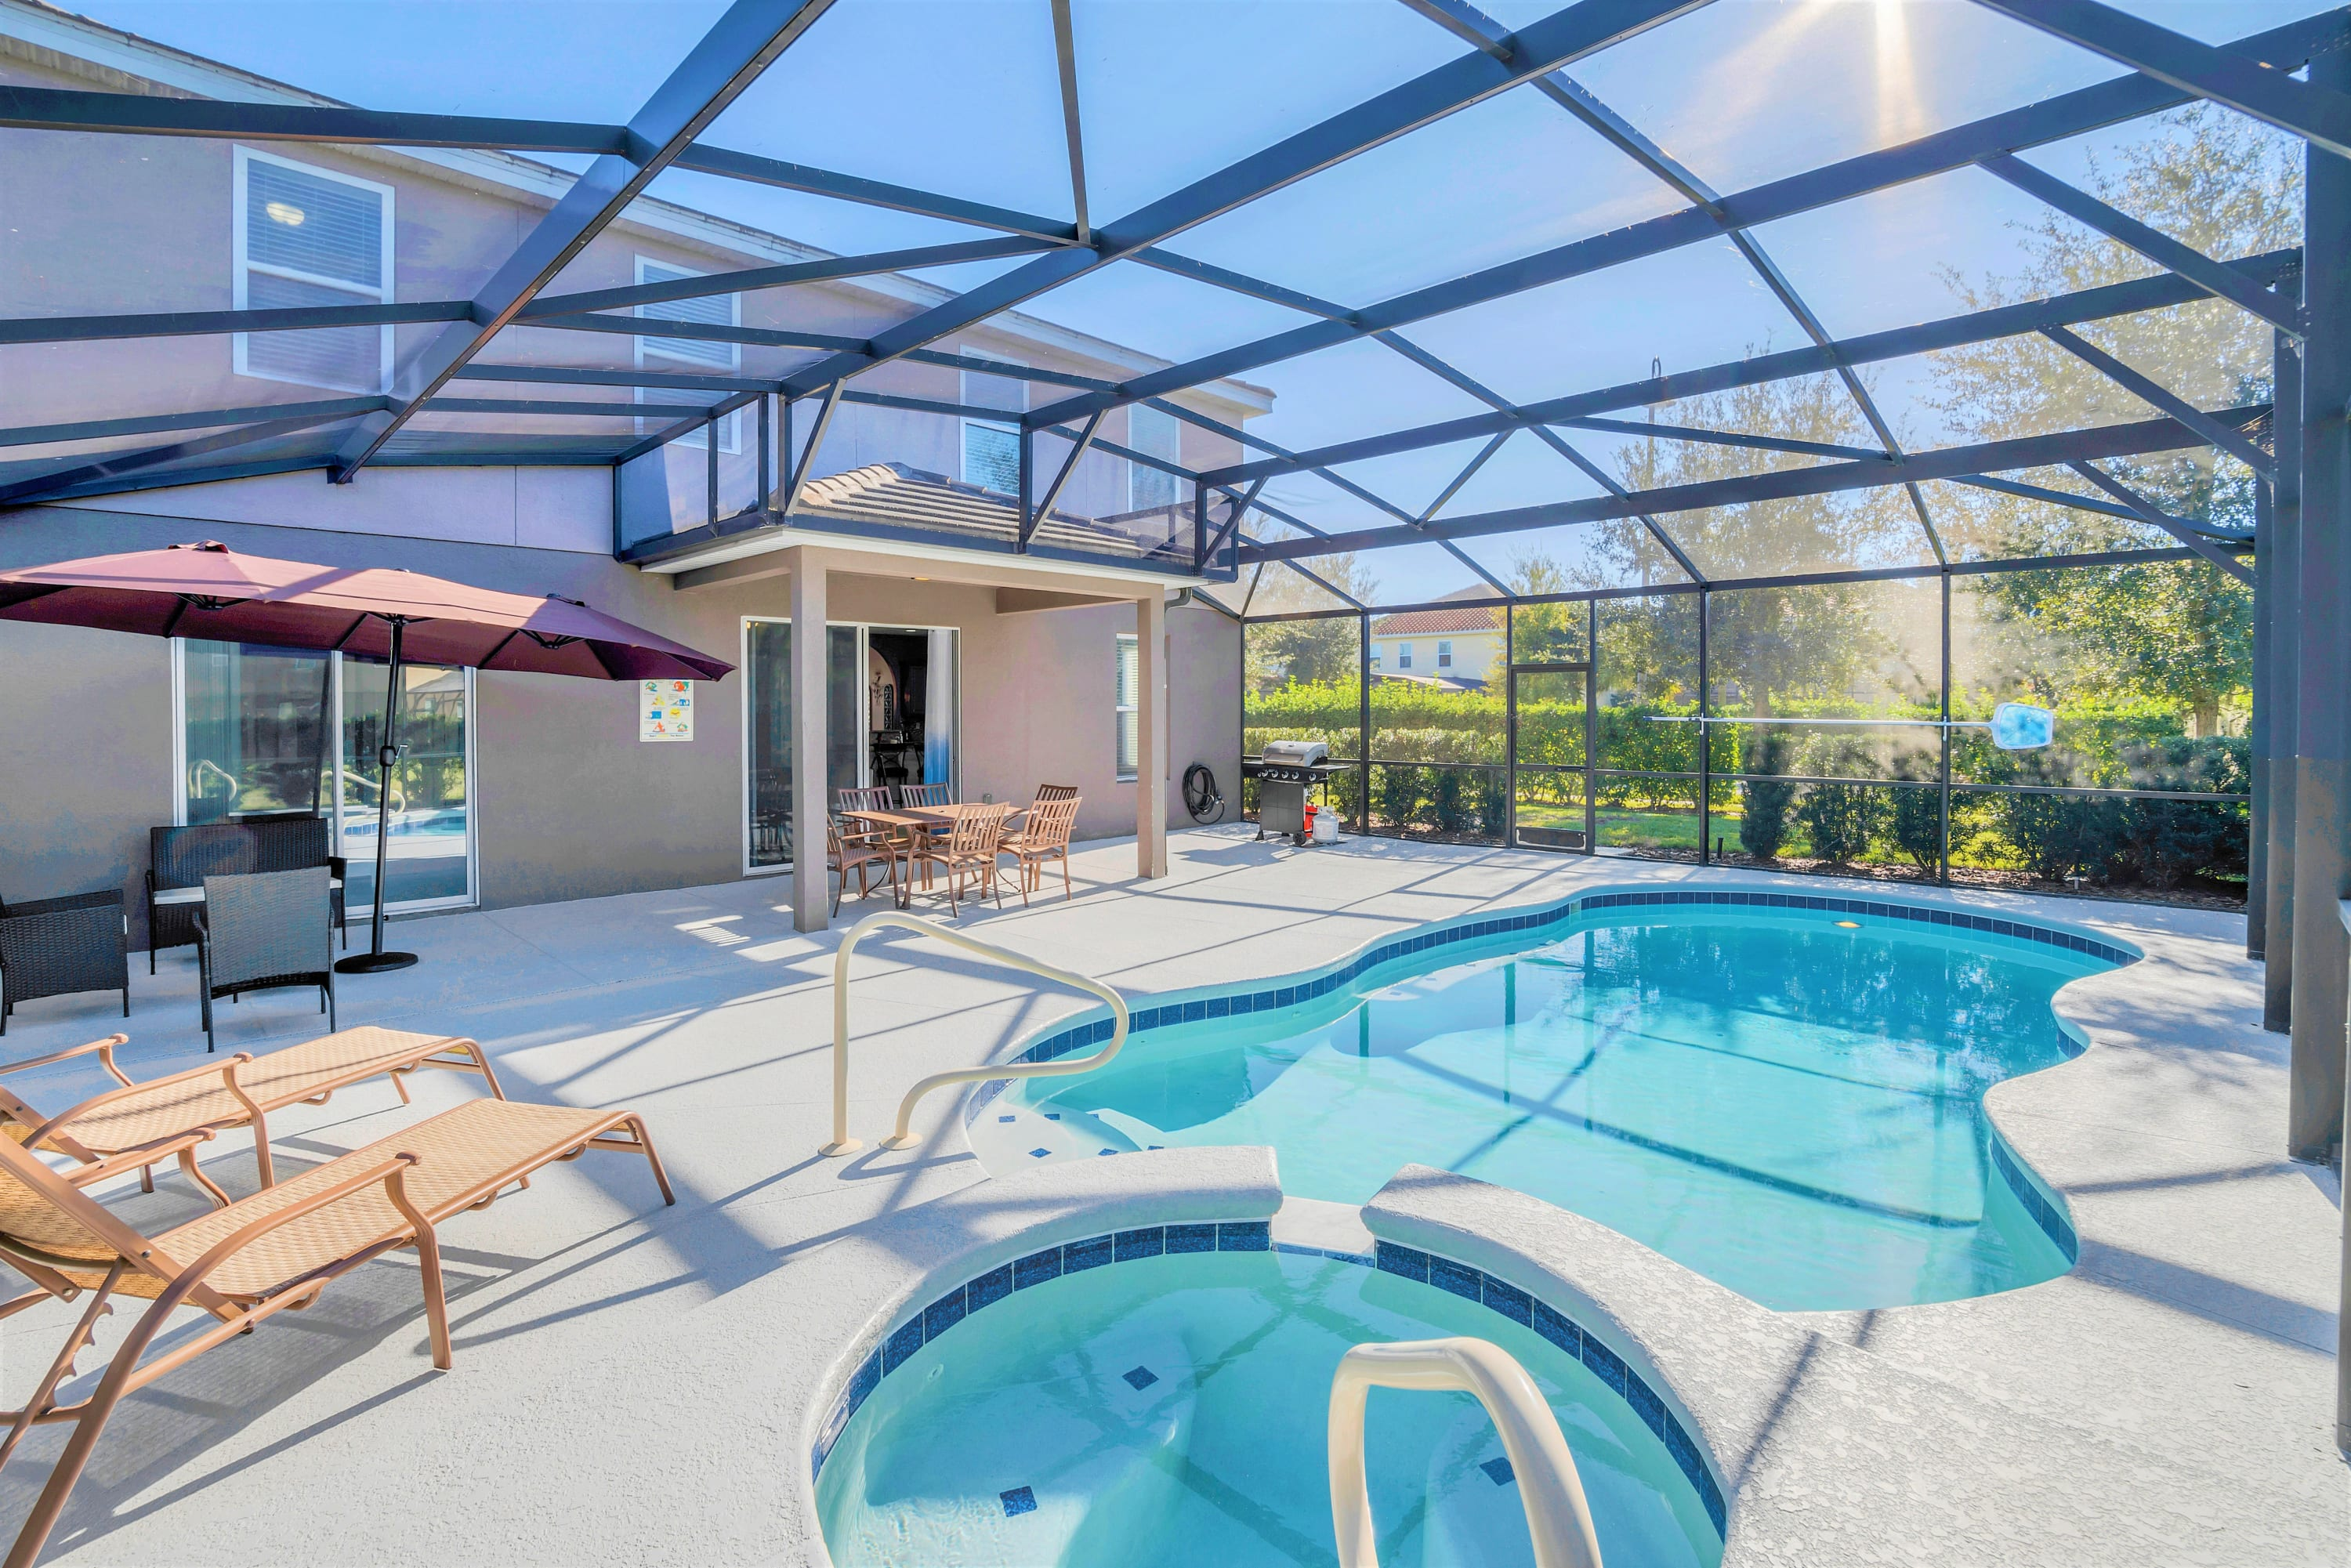 Family Resort - 6BR Home - Private Pool, Hot Tub and BBQ!